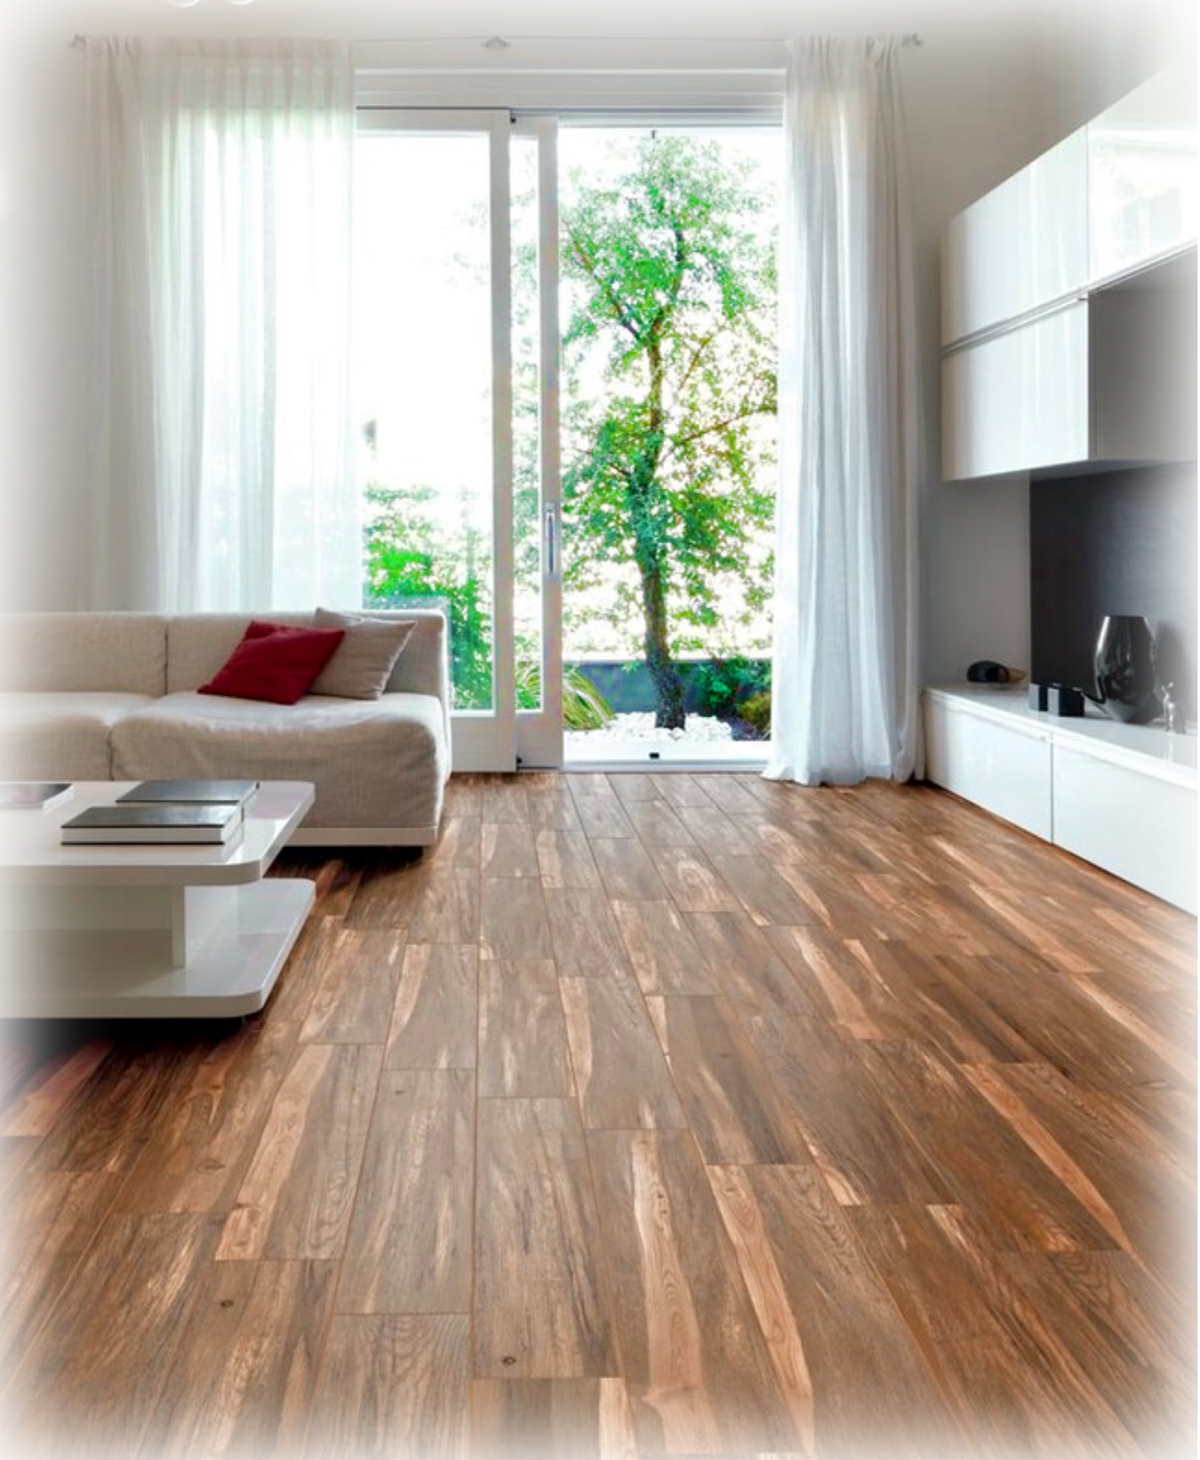 Porcelain Tile Offered By Foster Flooring For High Quality Stone And Wood Look Flooring Resistant To Moisture And Stronger Than Genuine Stone Flooring